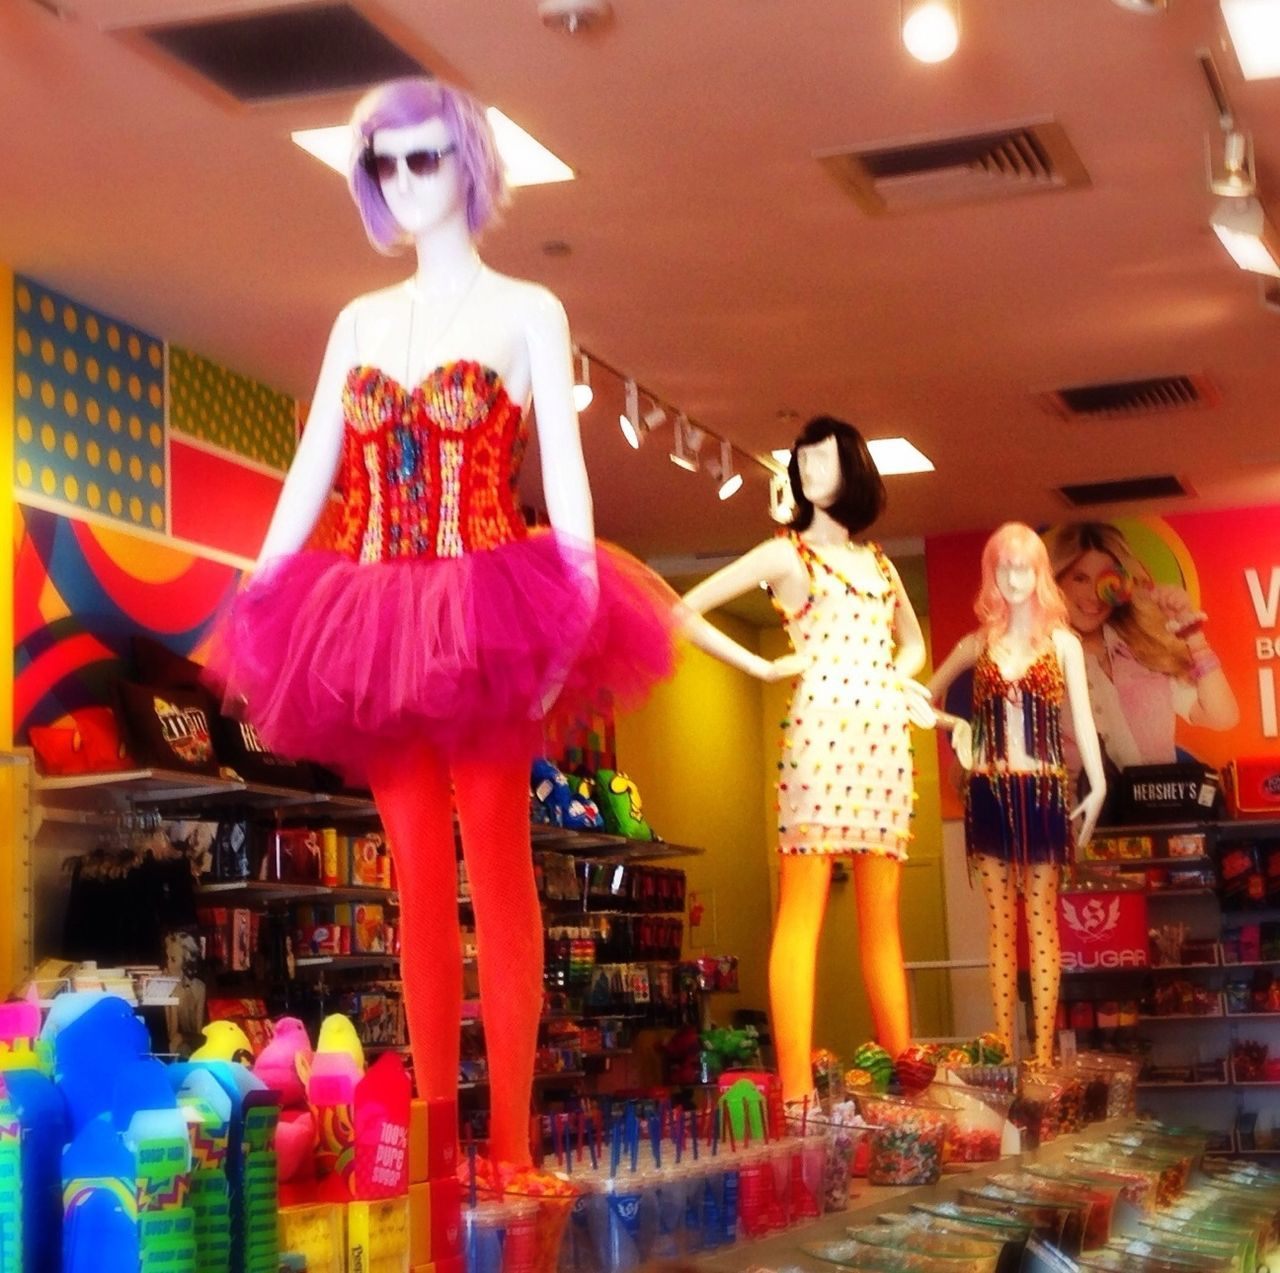 human representation, indoors, real people, low angle view, statue, retail, sculpture, multi colored, day